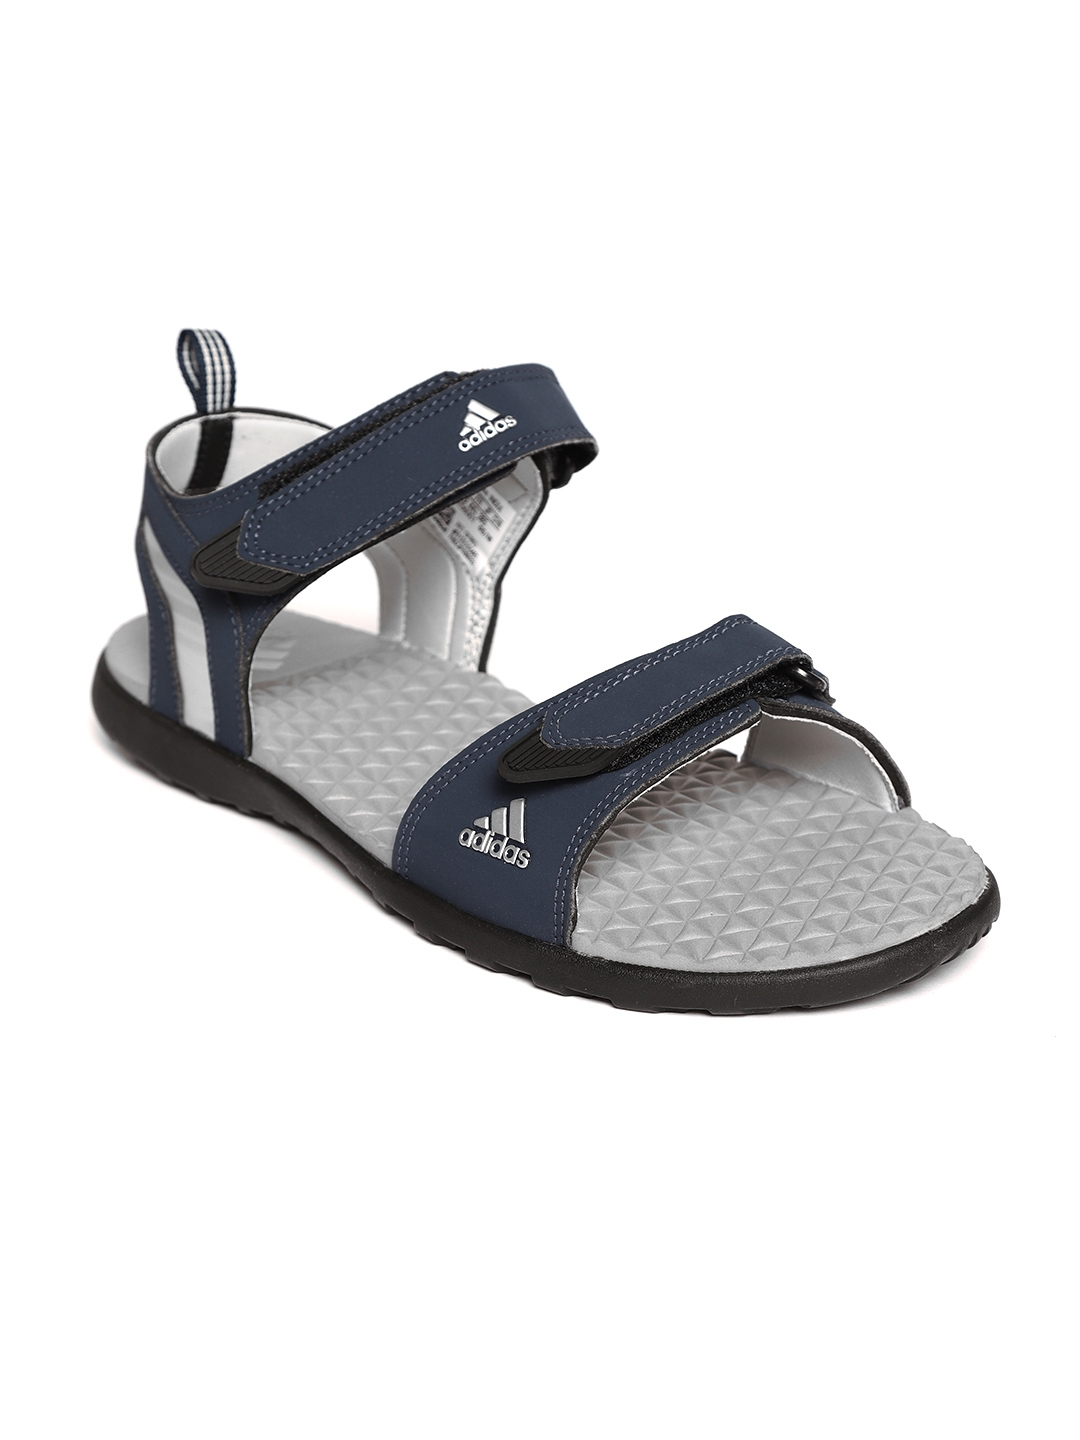 1727a3cd26b9 Buy ADIDAS Men Navy Blue MOBE Sports Sandals - Sports Sandals for ...